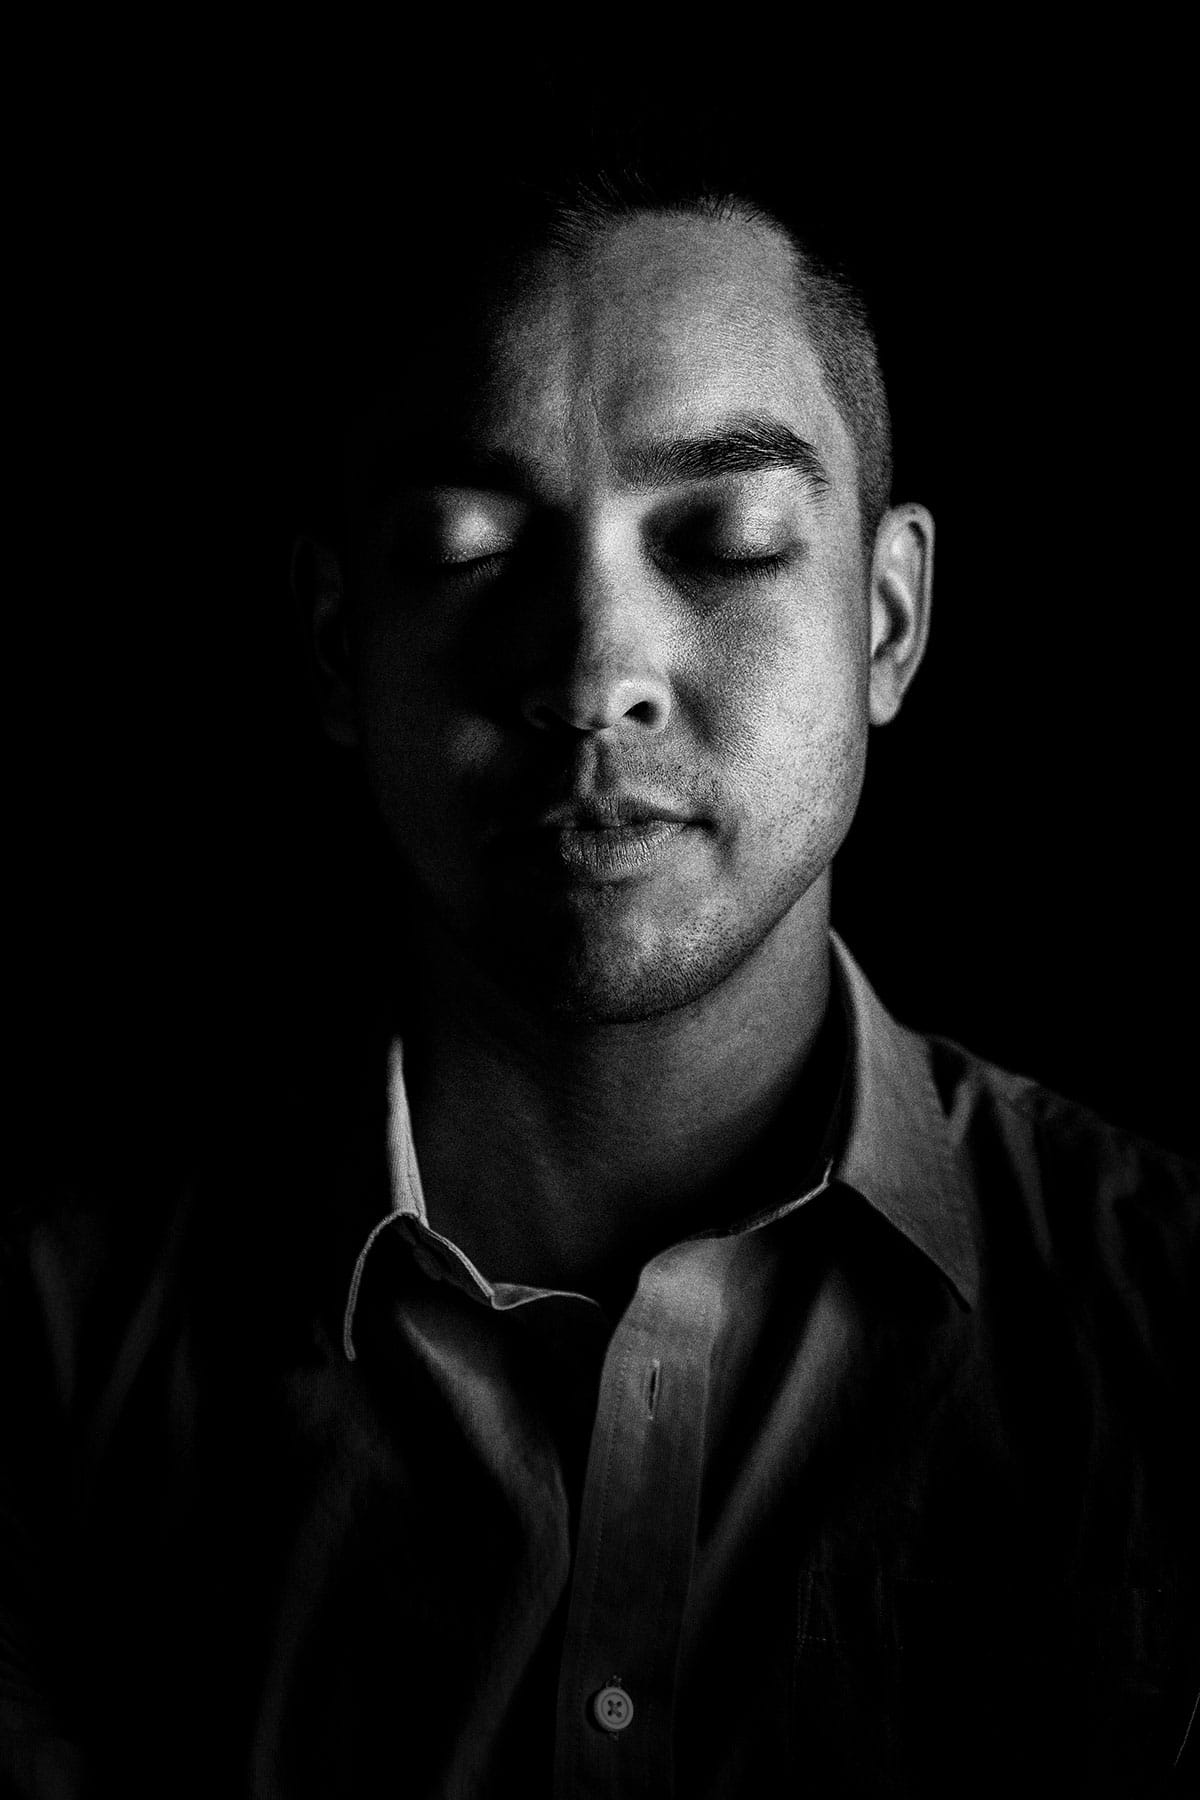 Eyes Closed Portrait of a Multicultural individuals: Black and White Portrait Photography by Jean Tran and Élysée Lang